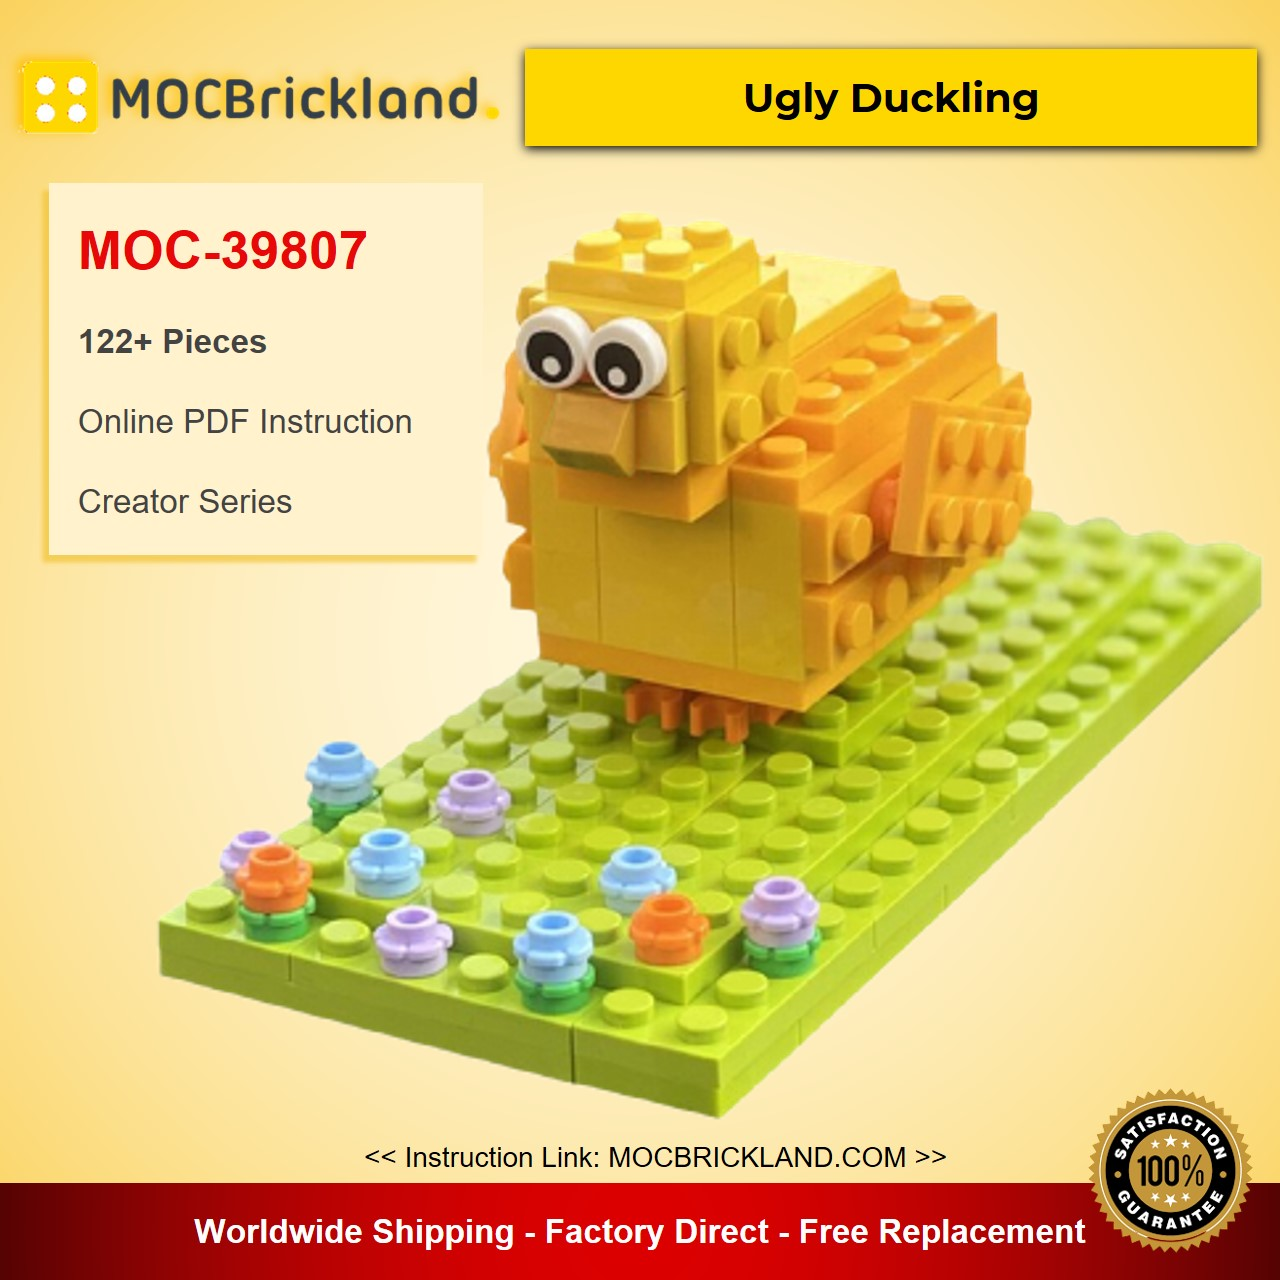 Ugly Duckling MOC-39807 Creator Designed By Runtemund With 122 Pieces